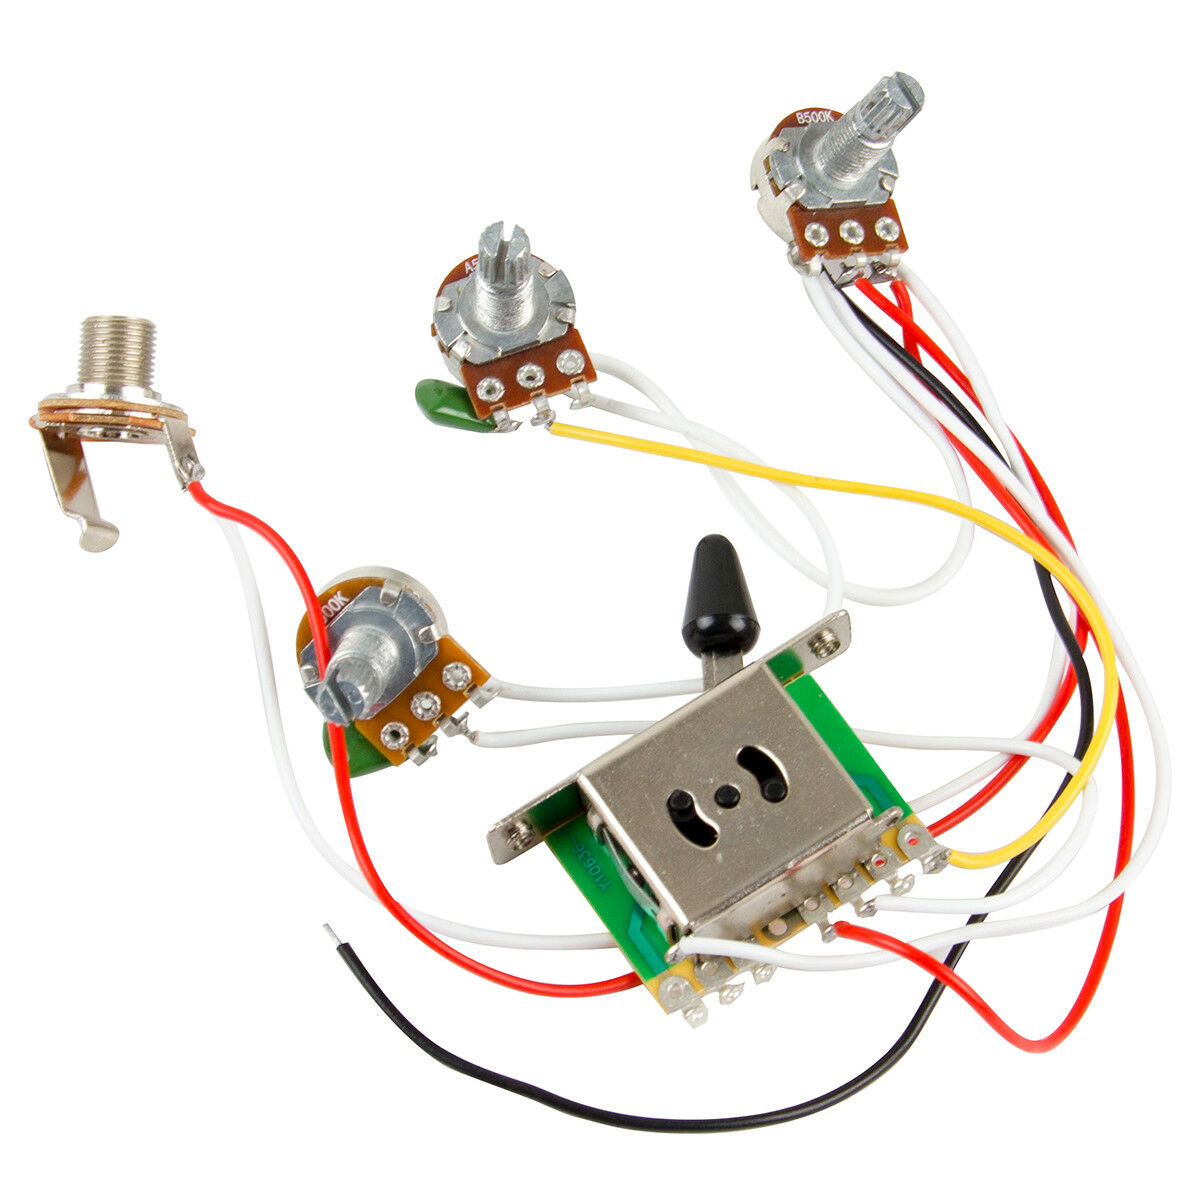 Guitar Wiring Harness Kit 5 Way Switch 1V2T 500k Pots for Fender Strat for  sale onlineeBay